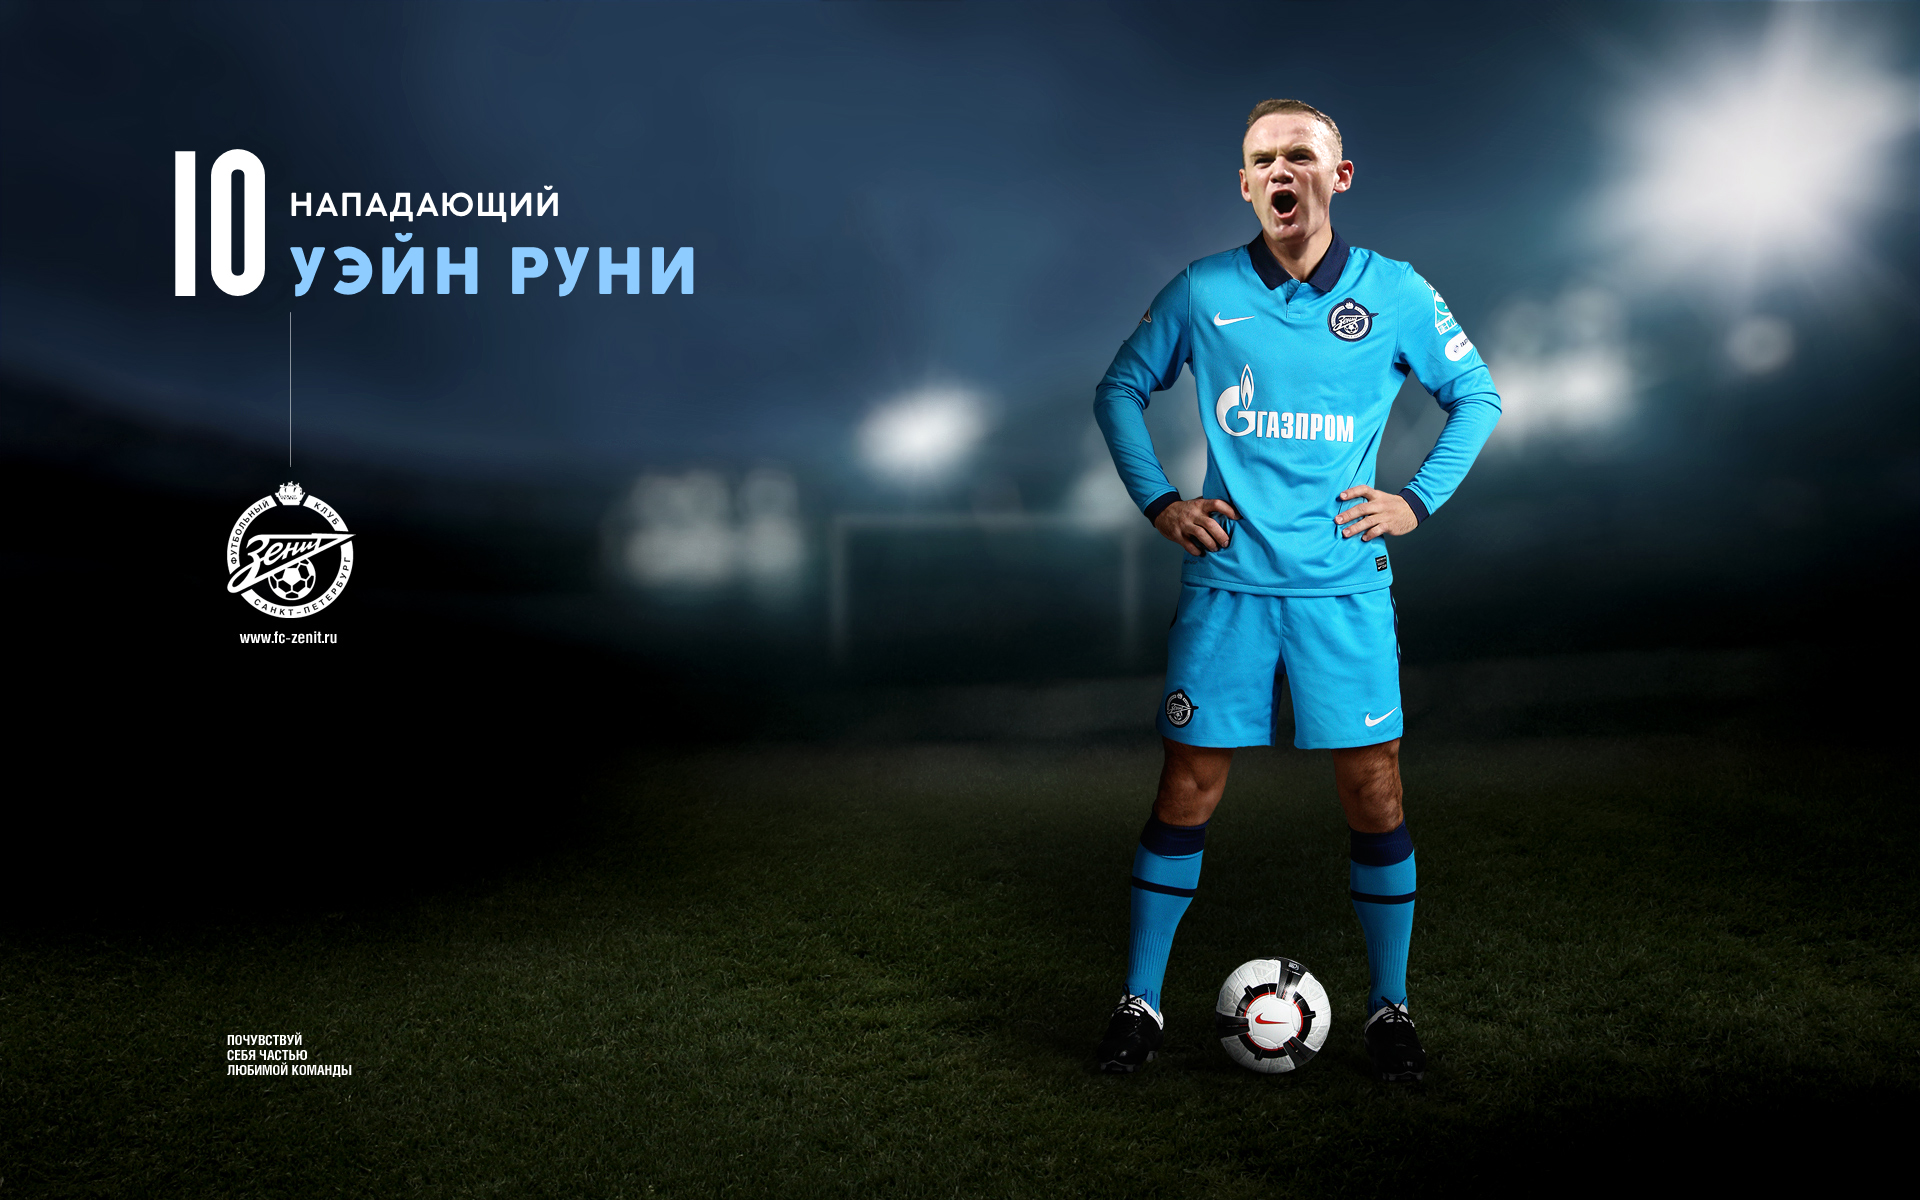 Wayne Rooney to sign for Zenit St. Petersburg in 50 million-euro transfer